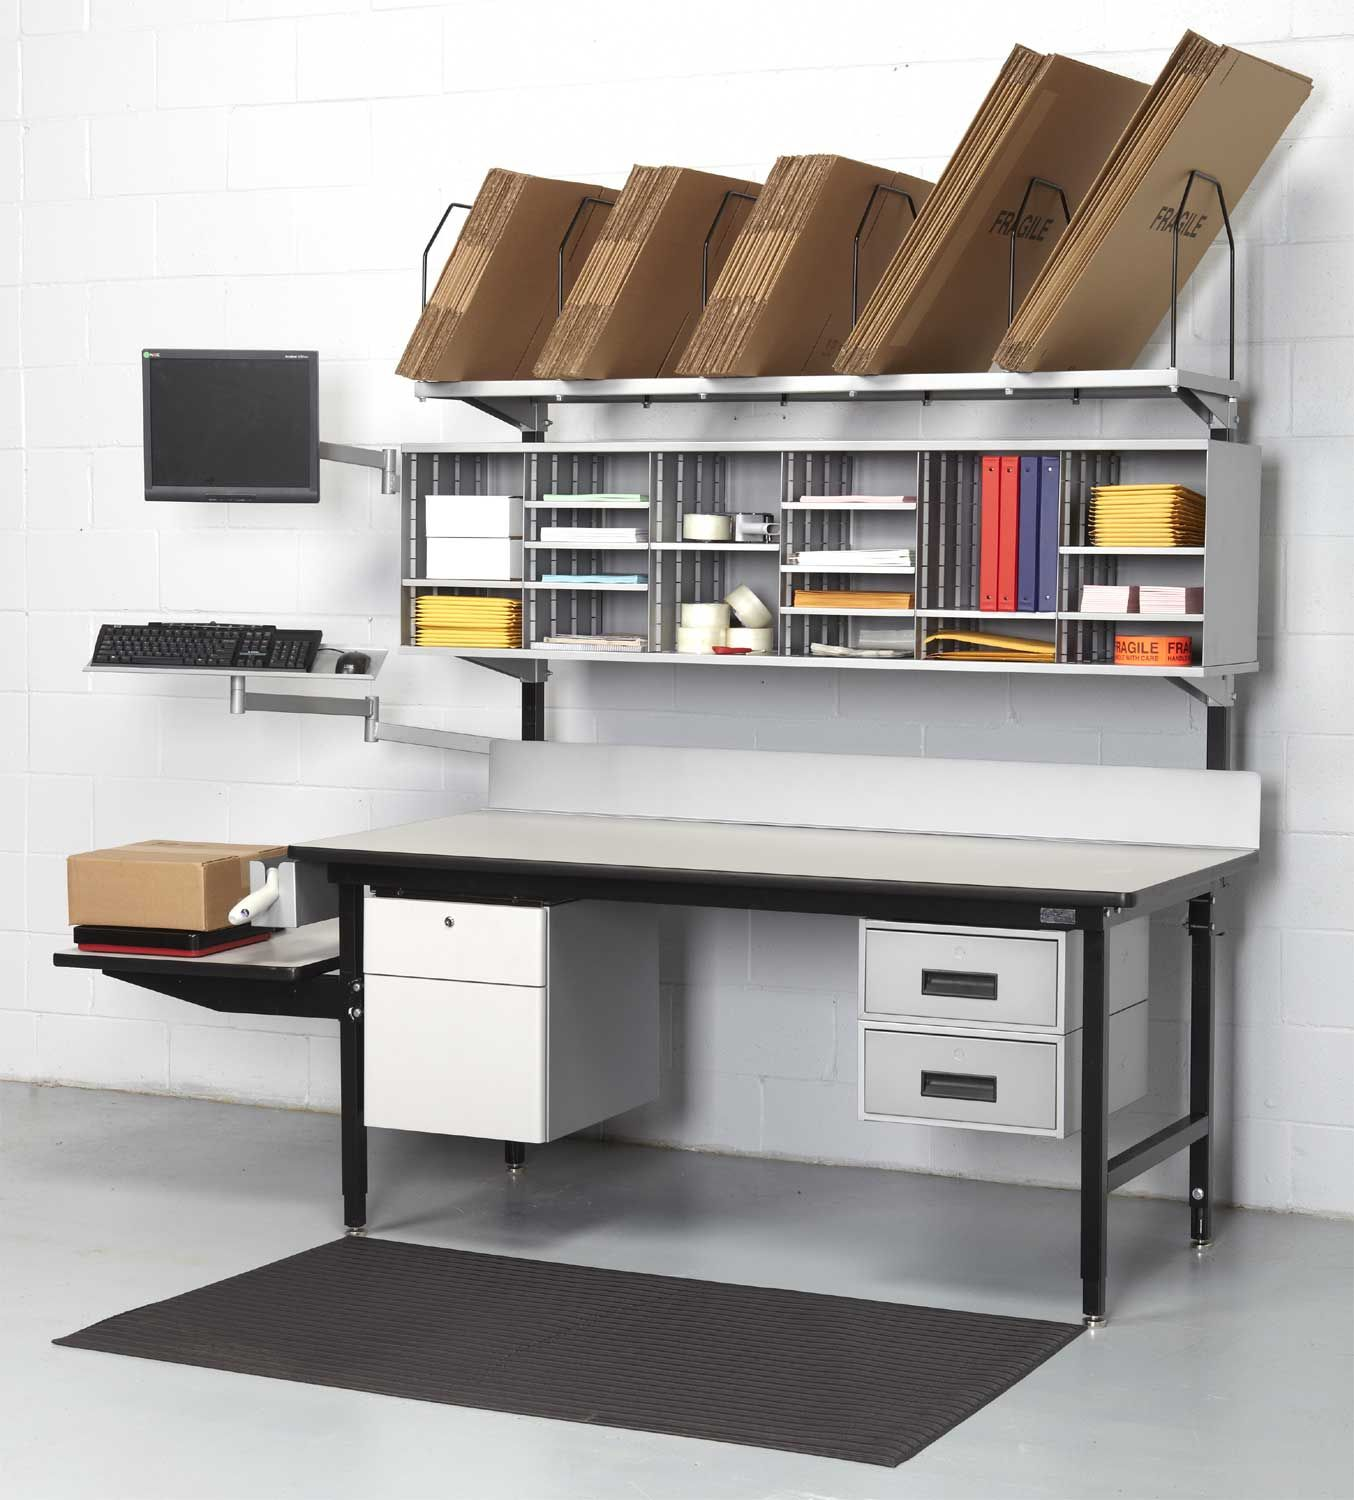 Visit Shorr For A Full Line Of Packaging And Shipping Workstations To Help  Your Business Increase Productivity And Get Shipments Out Faster.